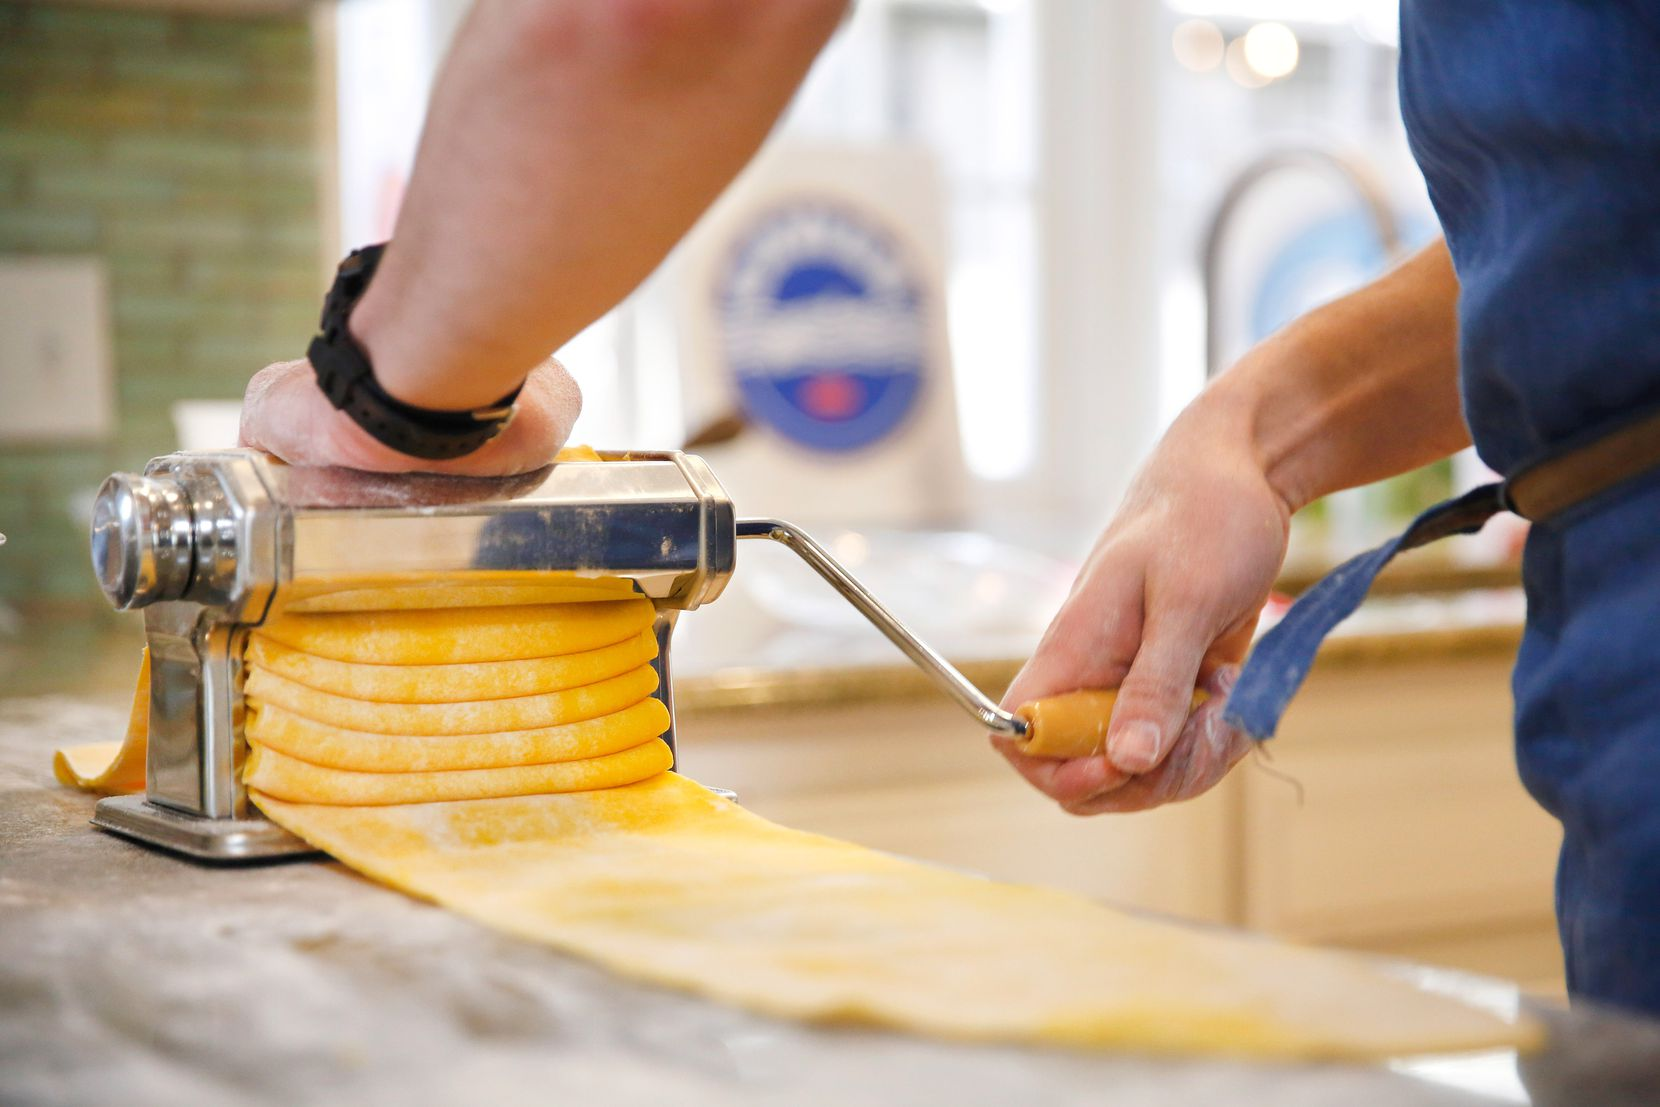 """Restaurant owner and chef Julian Barsotti uses a pasta machine to thin the lasagna sheets down to a 1/16"""" before boiling them. (Tom Fox/The Dallas Morning News)"""